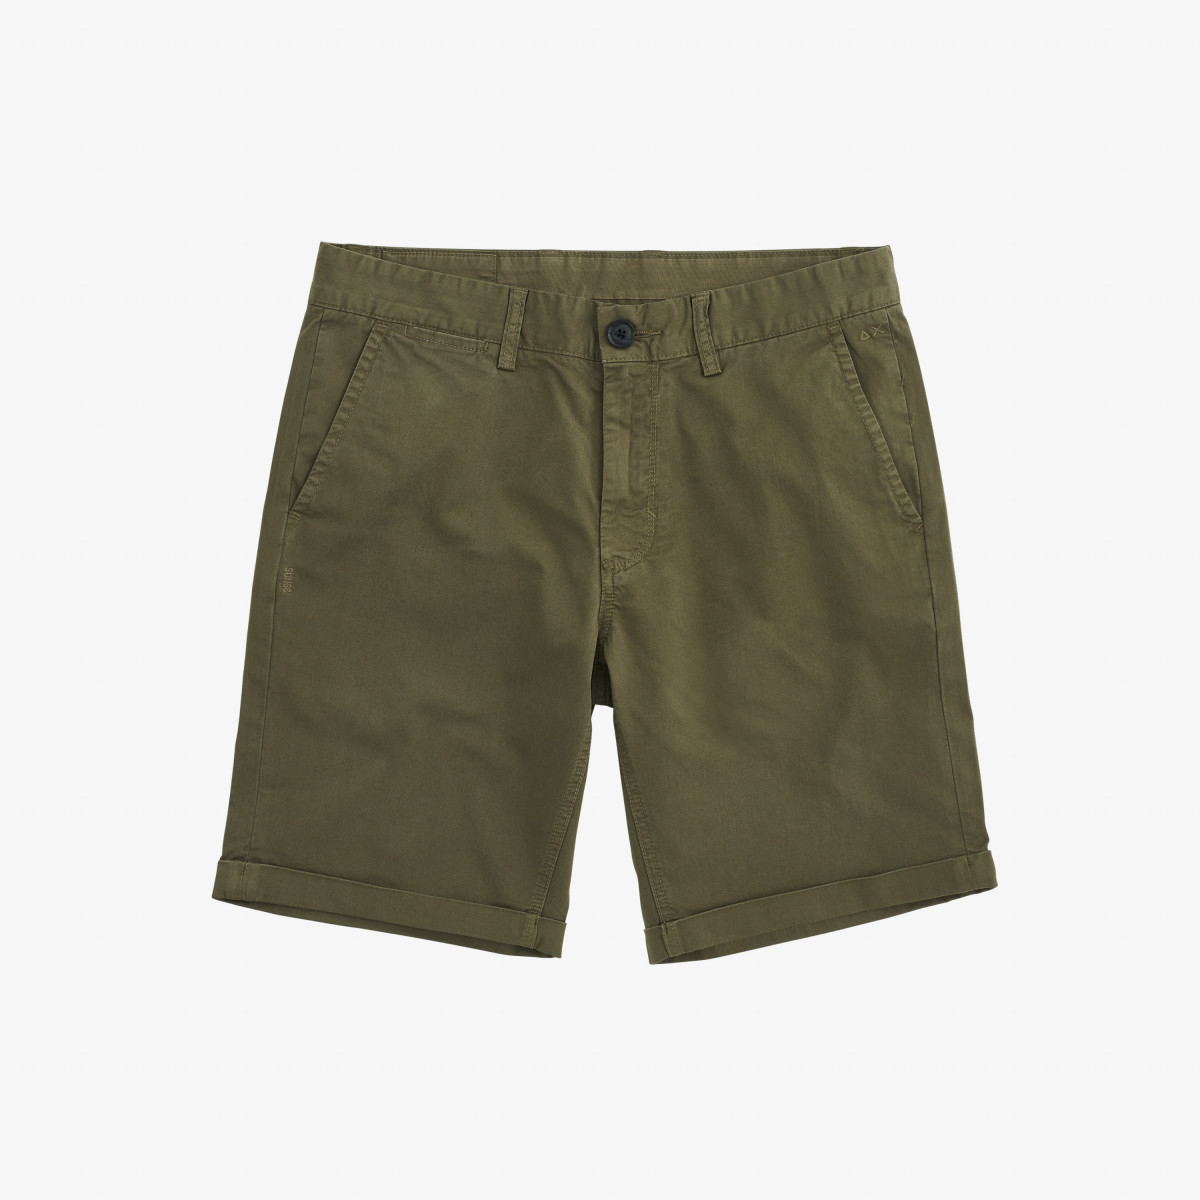 BERMUDA FOLD SOLID DARK MILITARY